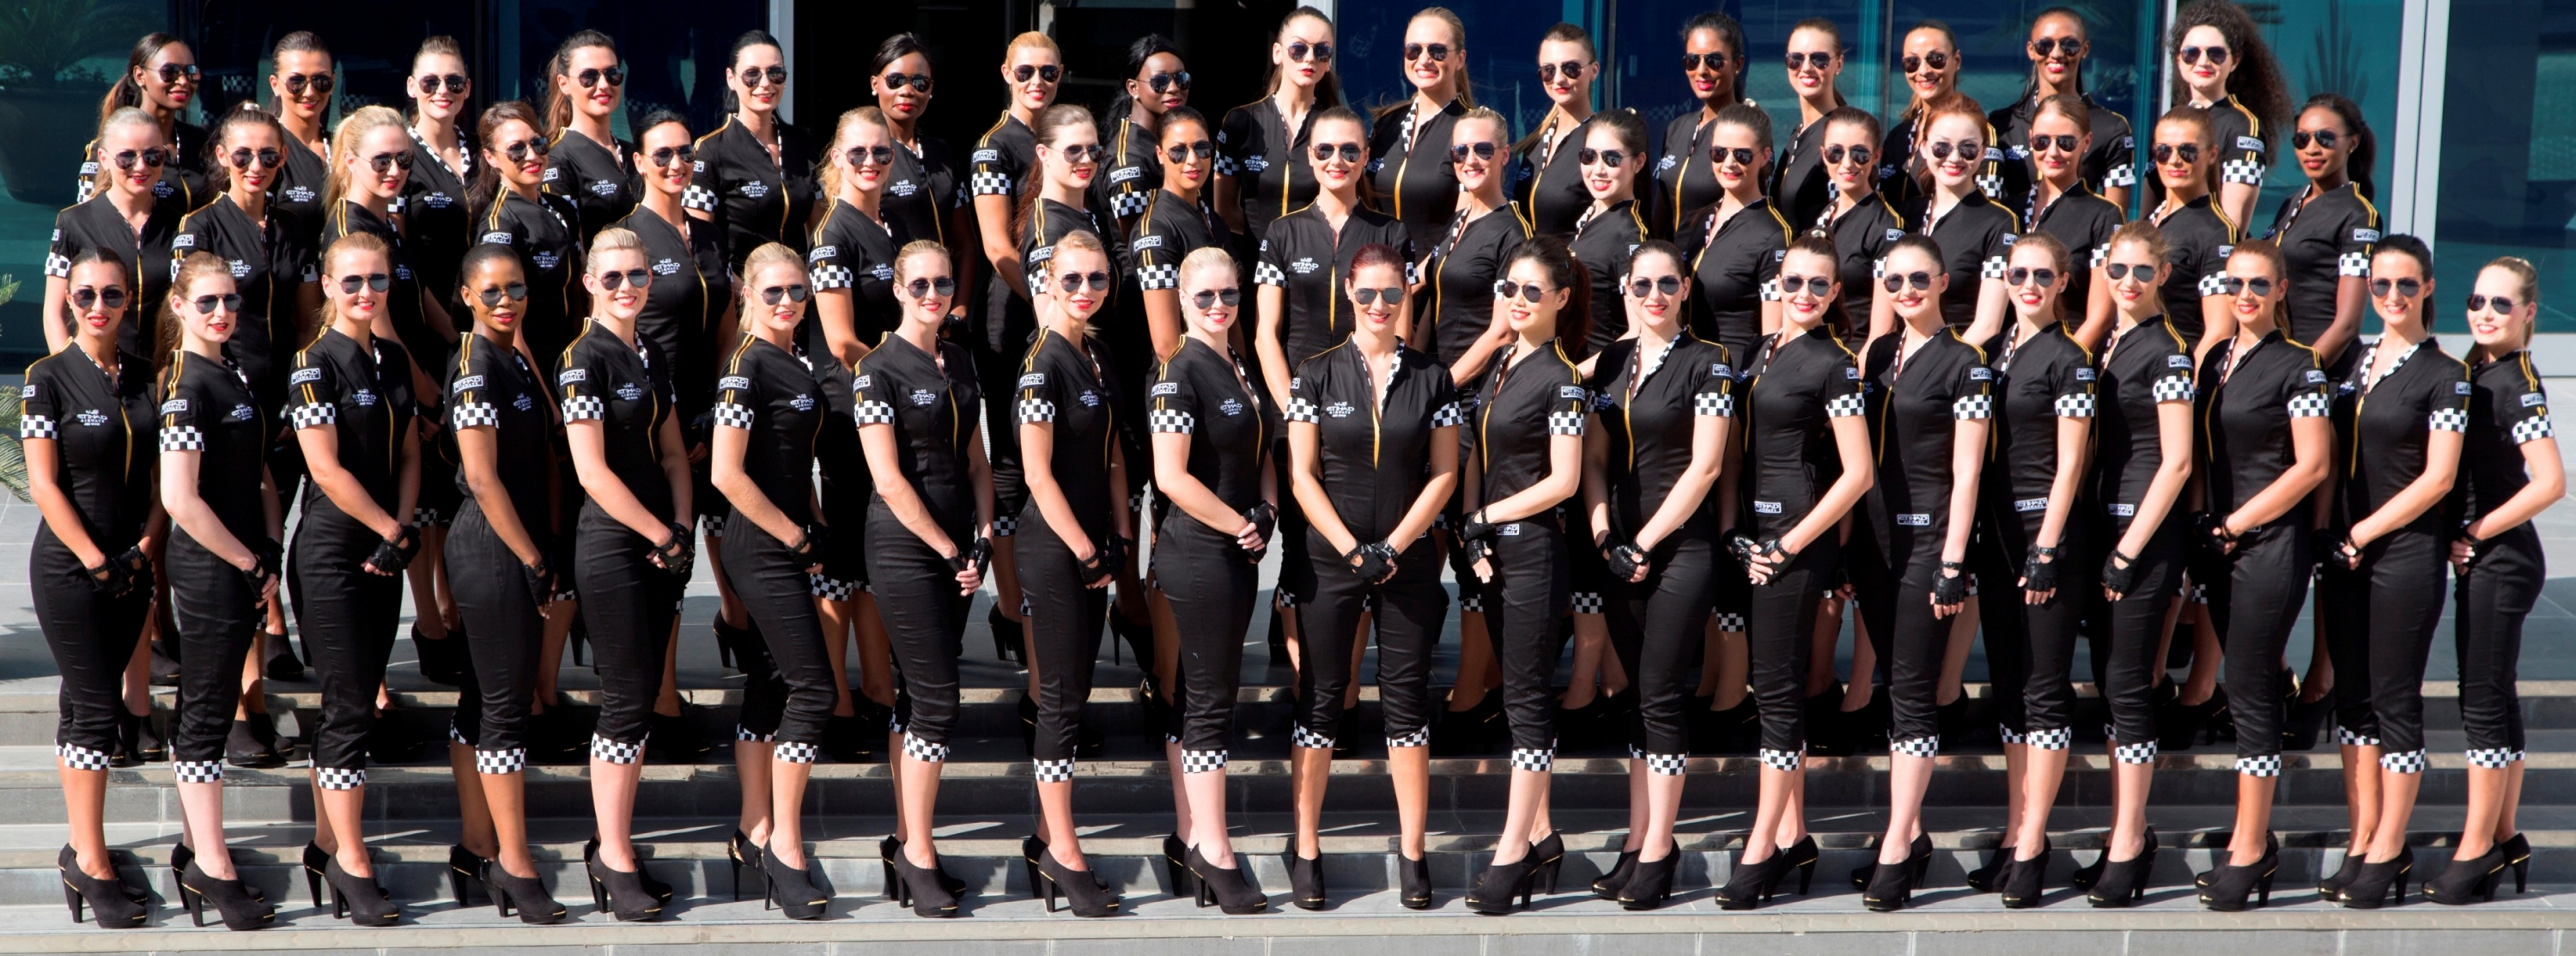 F1-grid-girls.jpg